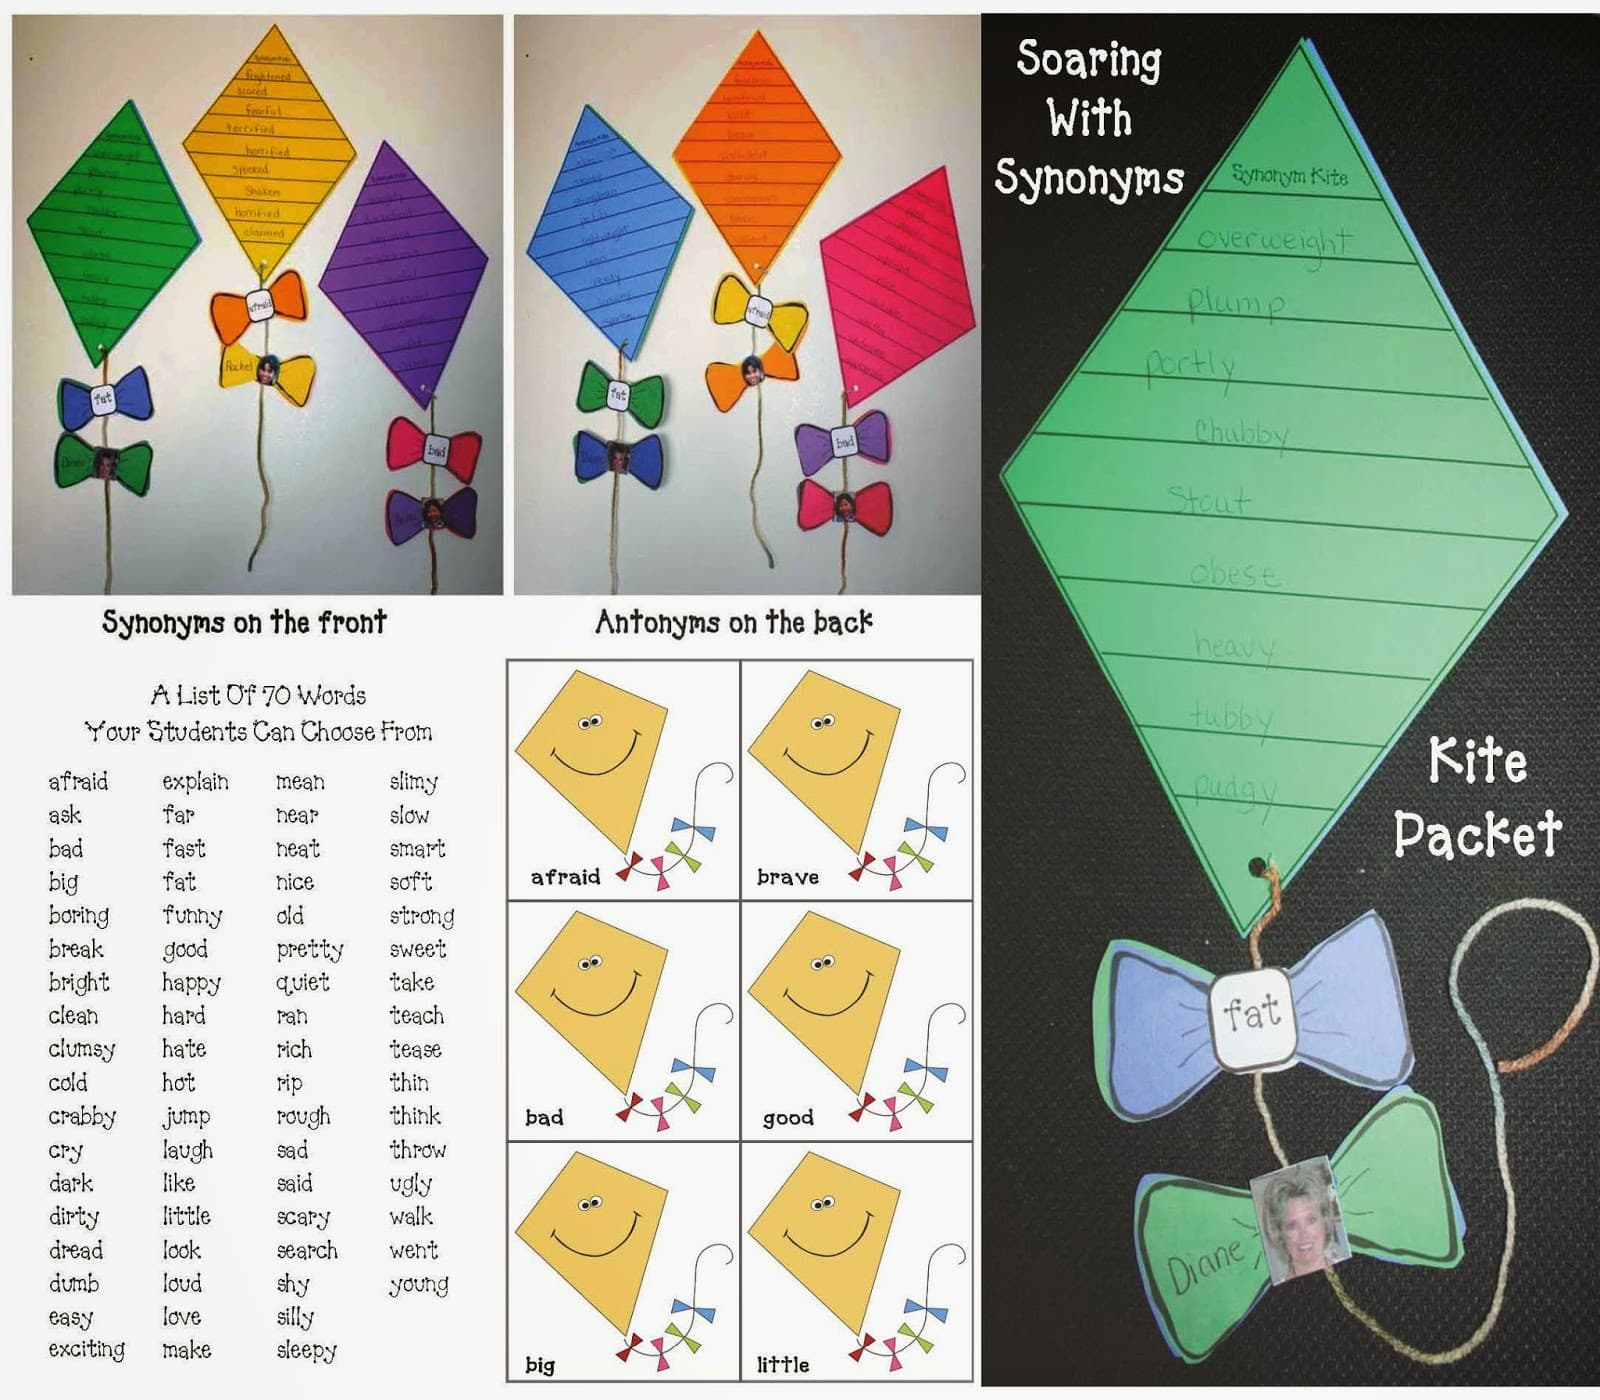 Soaring With Synonyms Kite Themed Packet